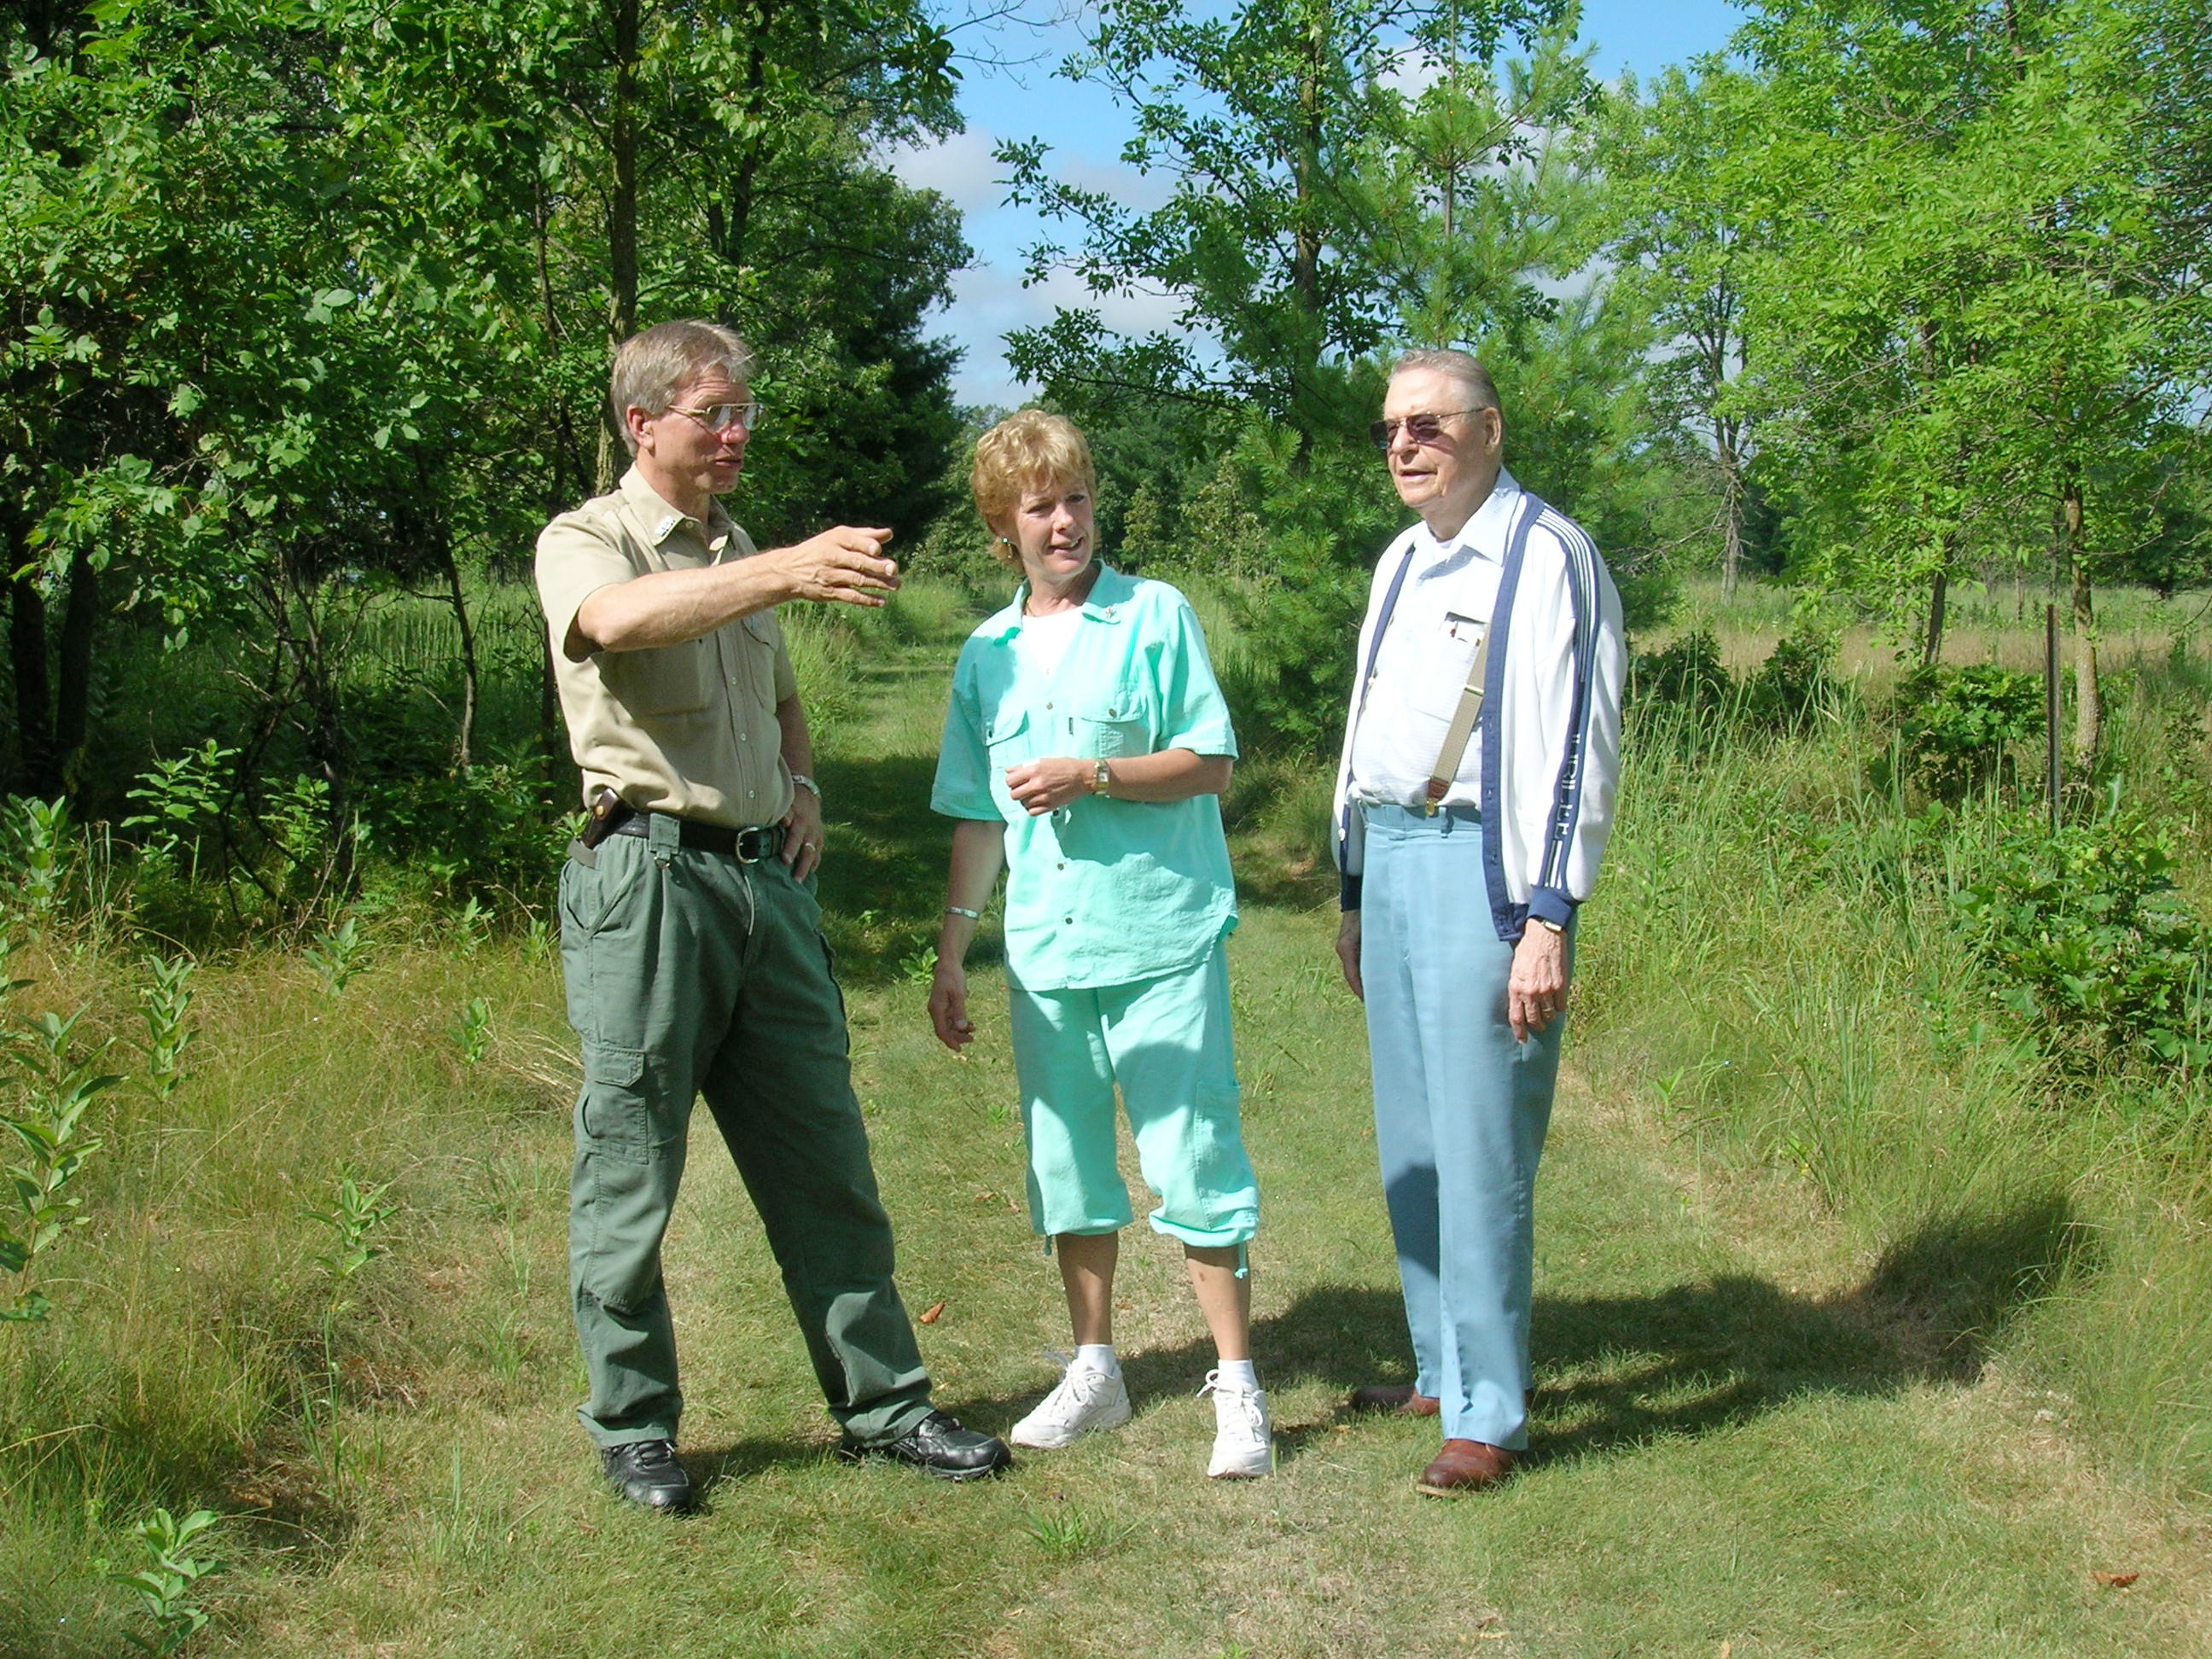 Park staff points while talking to two people